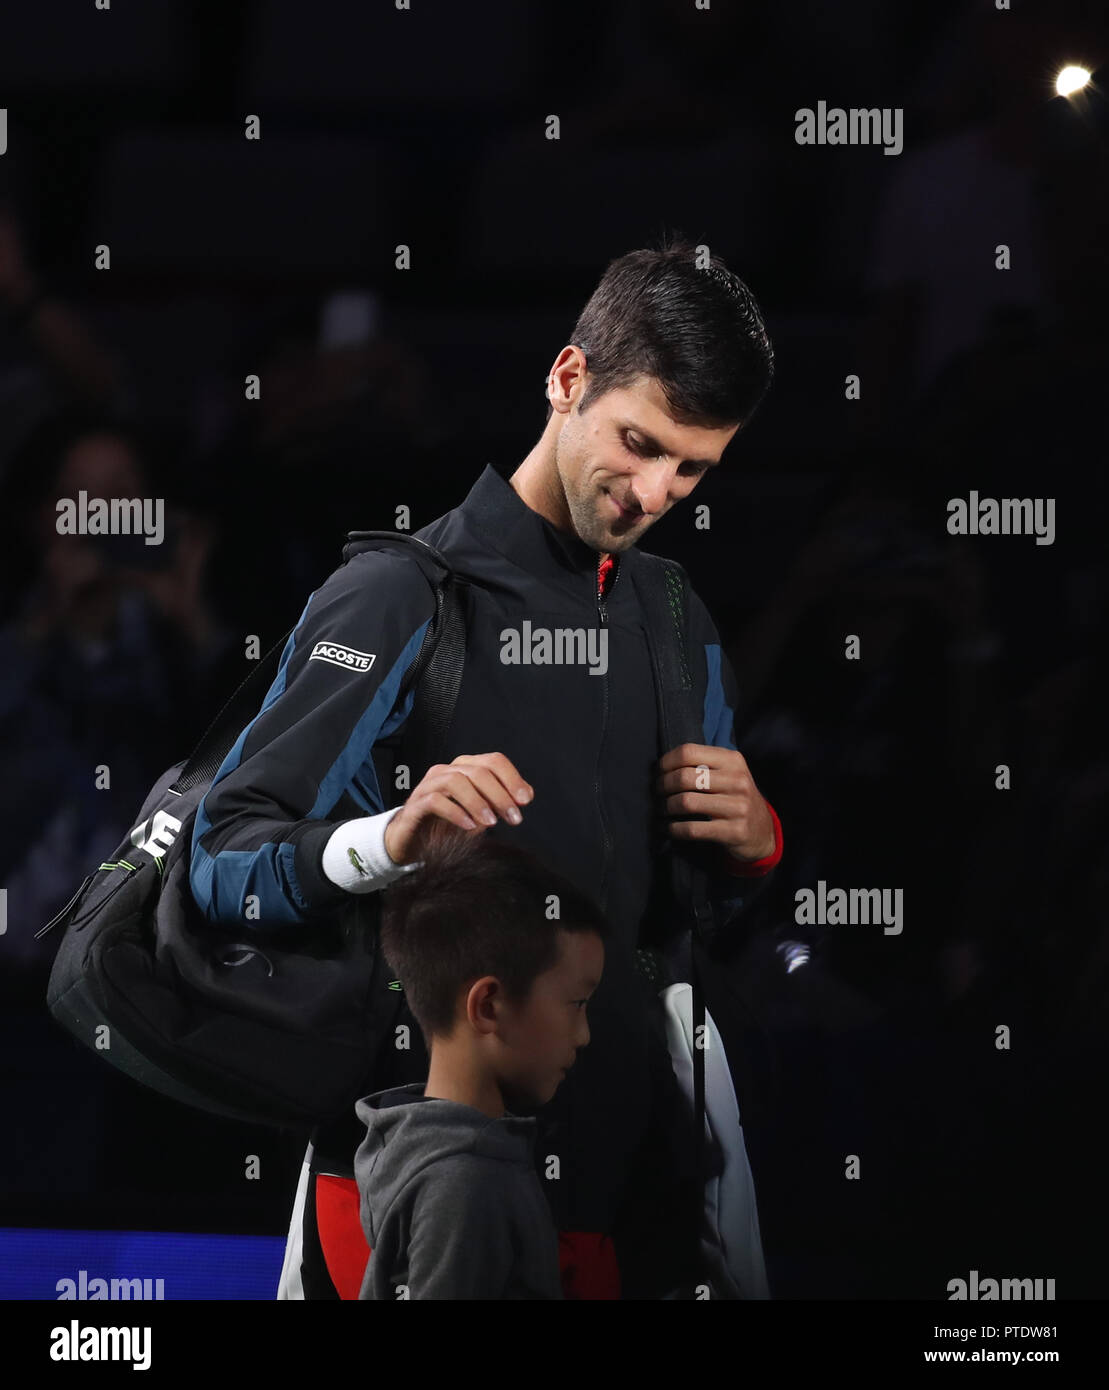 Shanghai. 9th Oct, 2018. Serbia's Novak Djokovic enters the court ahead of the men's singles second round match against France's Jeremy Chardy at the Shanghai Masters tennis tournament on Oct. 9, 2018. Novak Djokovic won 2-0. Credit: Ding Ting/Xinhua/Alamy Live News - Stock Image